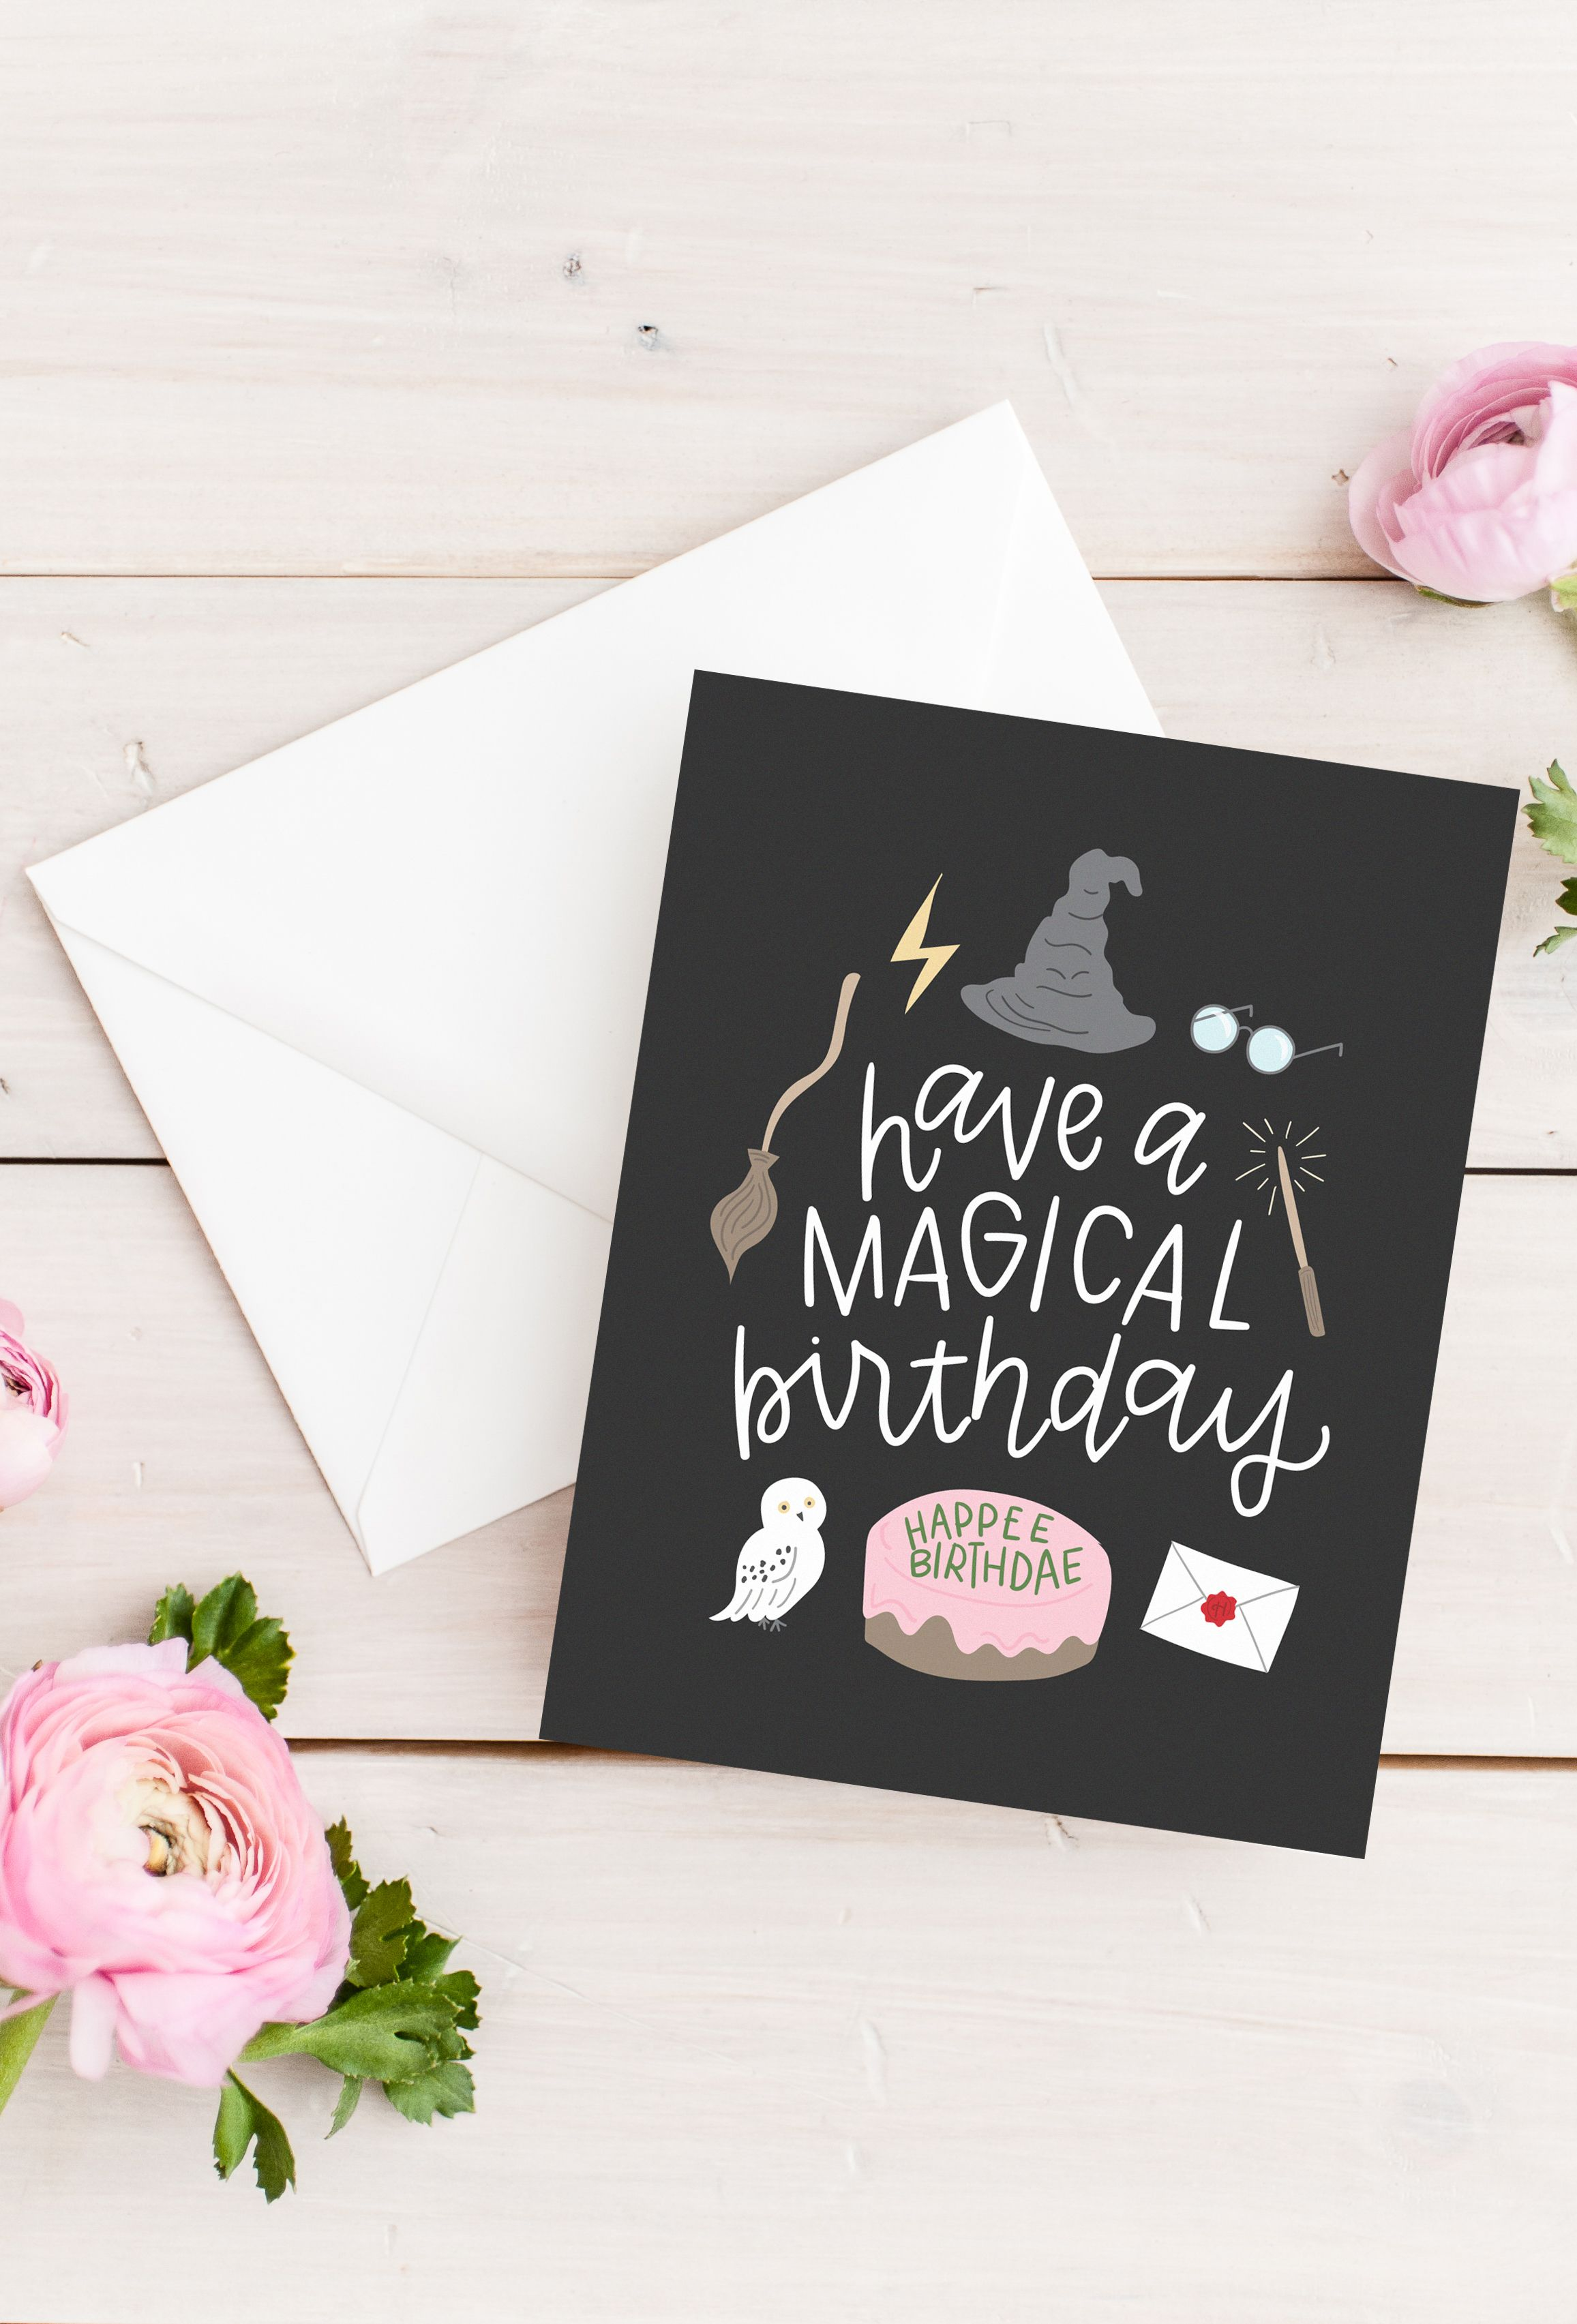 birthday card for harry potter fans wish them a magical